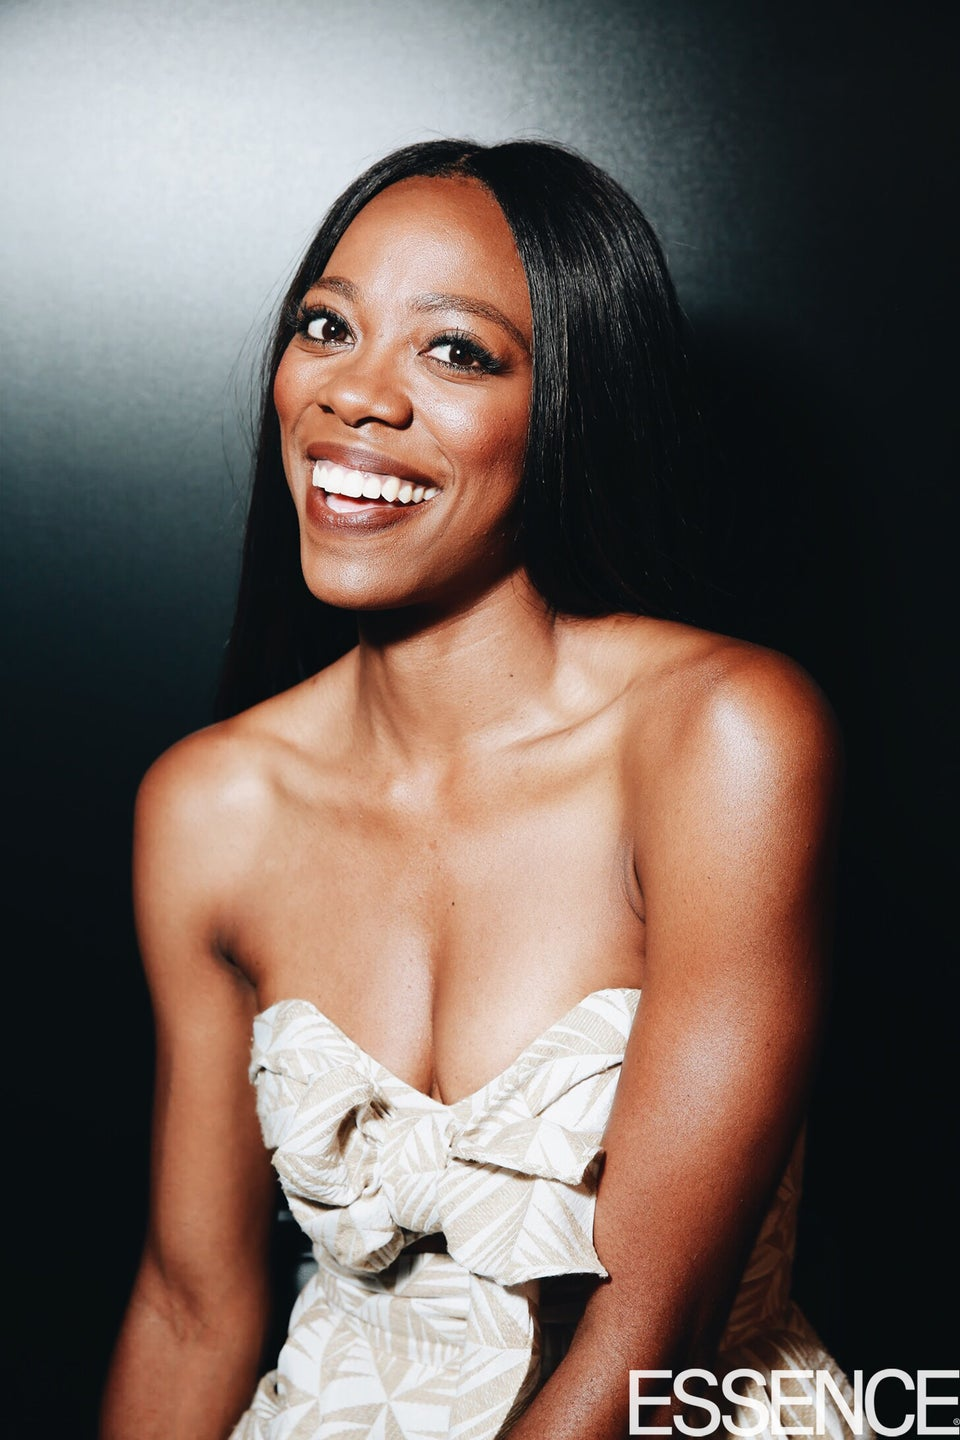 'Insecure's' Yvonne Orji Drops Nuggets Of Wisdom On Love And Immigration